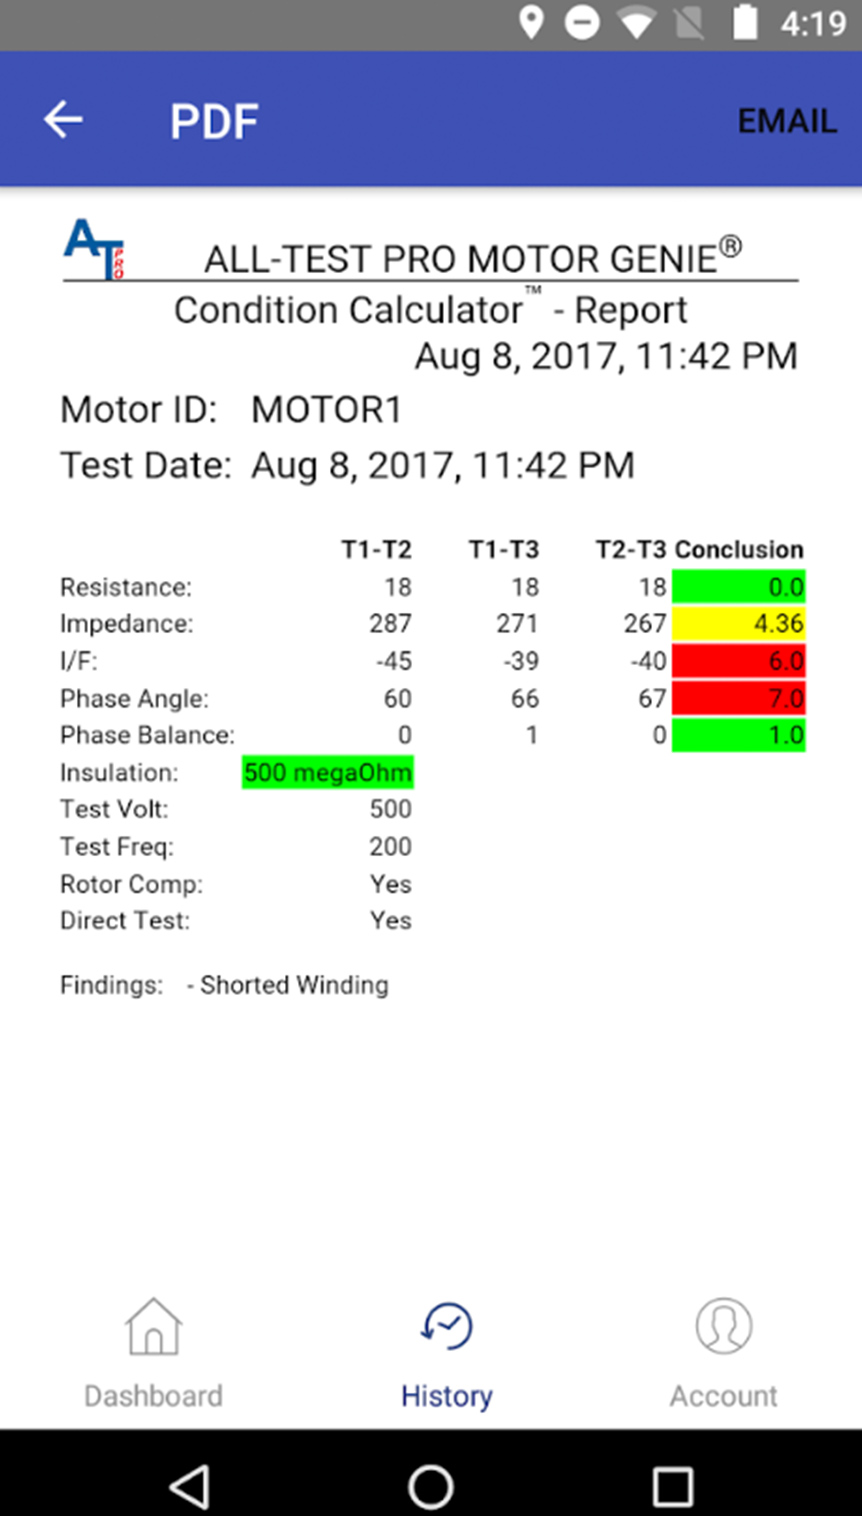 ALL-TEST Pro MOTOR GENIE® BAD Report